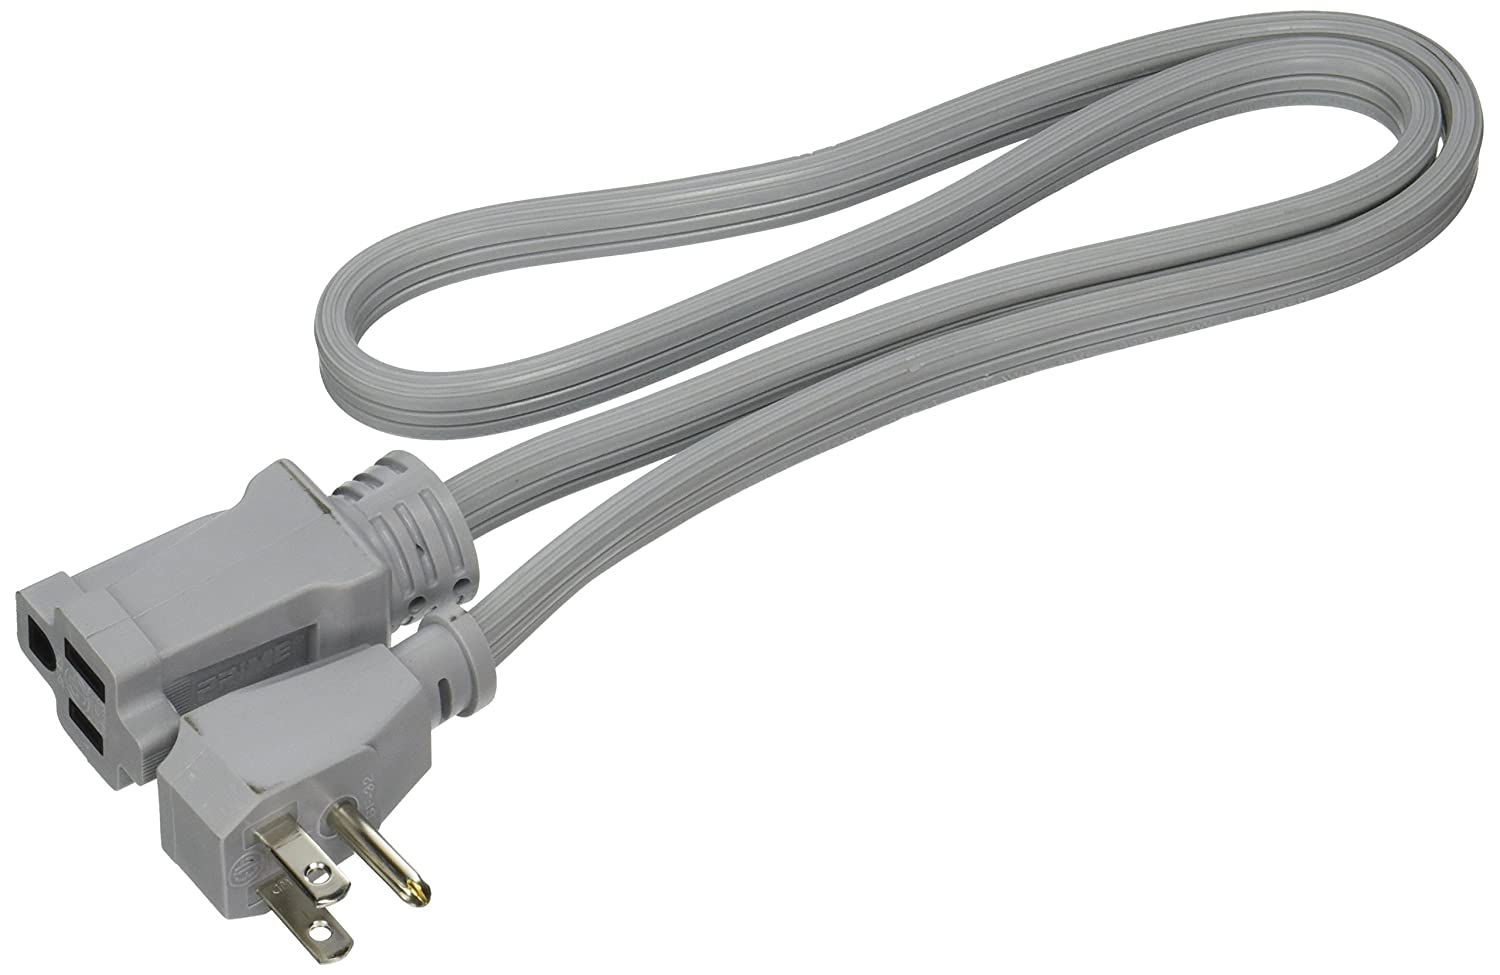 Prime EC680503L Air Conditioner and Major Appliance Extension Cord, Gray, 3-Feet